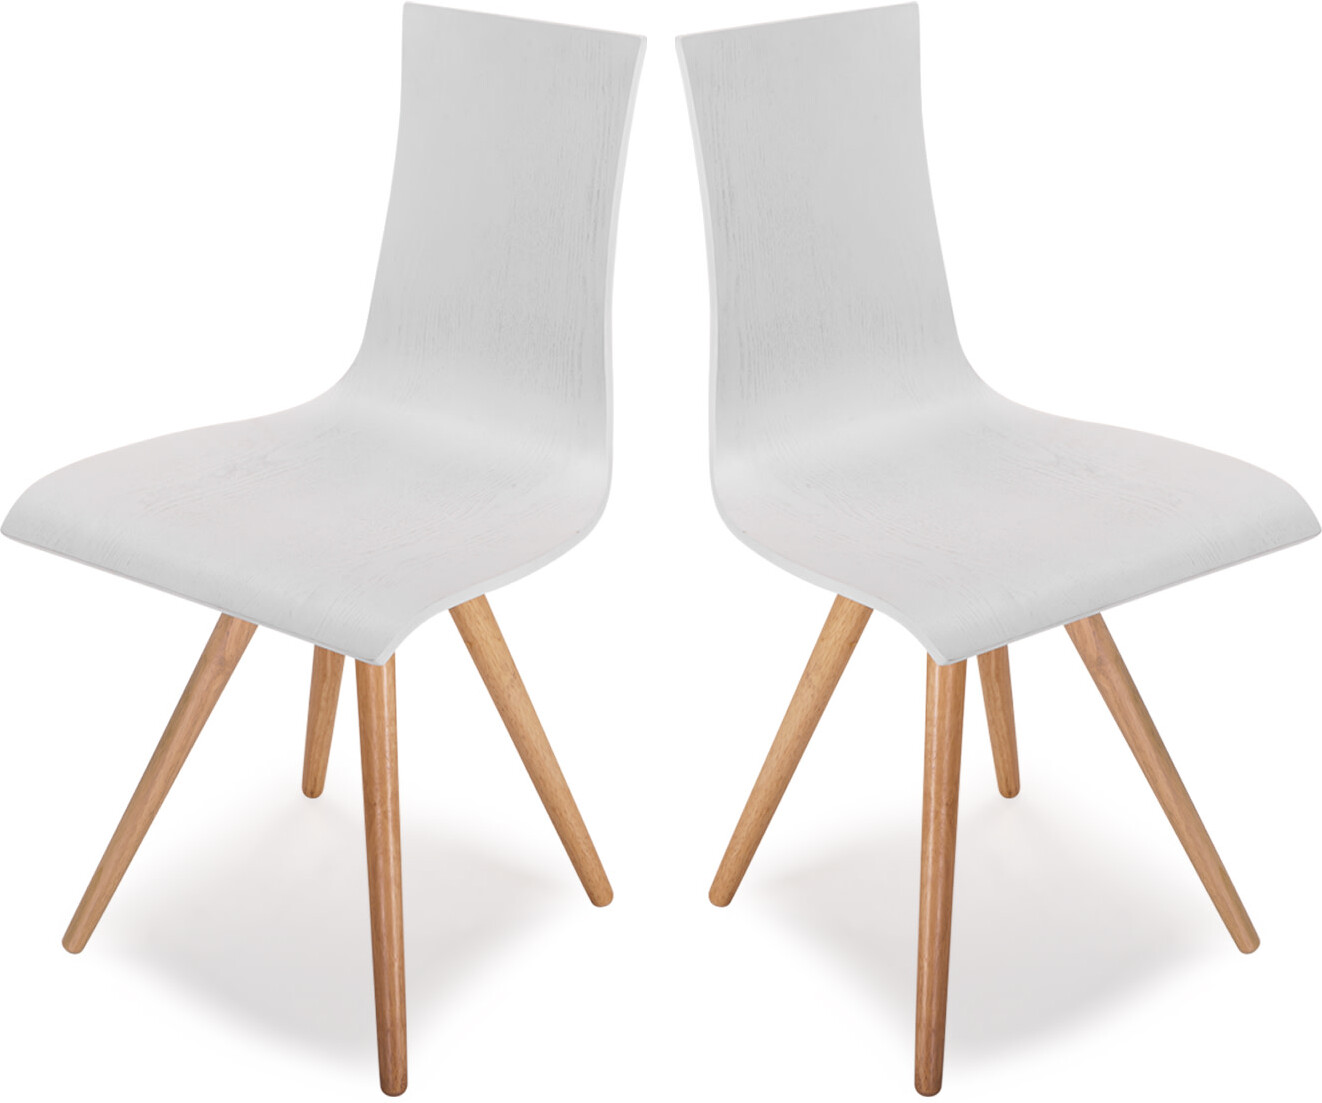 Marvelous photograph of  Dining Chairs White Great Value Modern Wooden Dining Chairs White with #7C4E32 color and 1322x1096 pixels